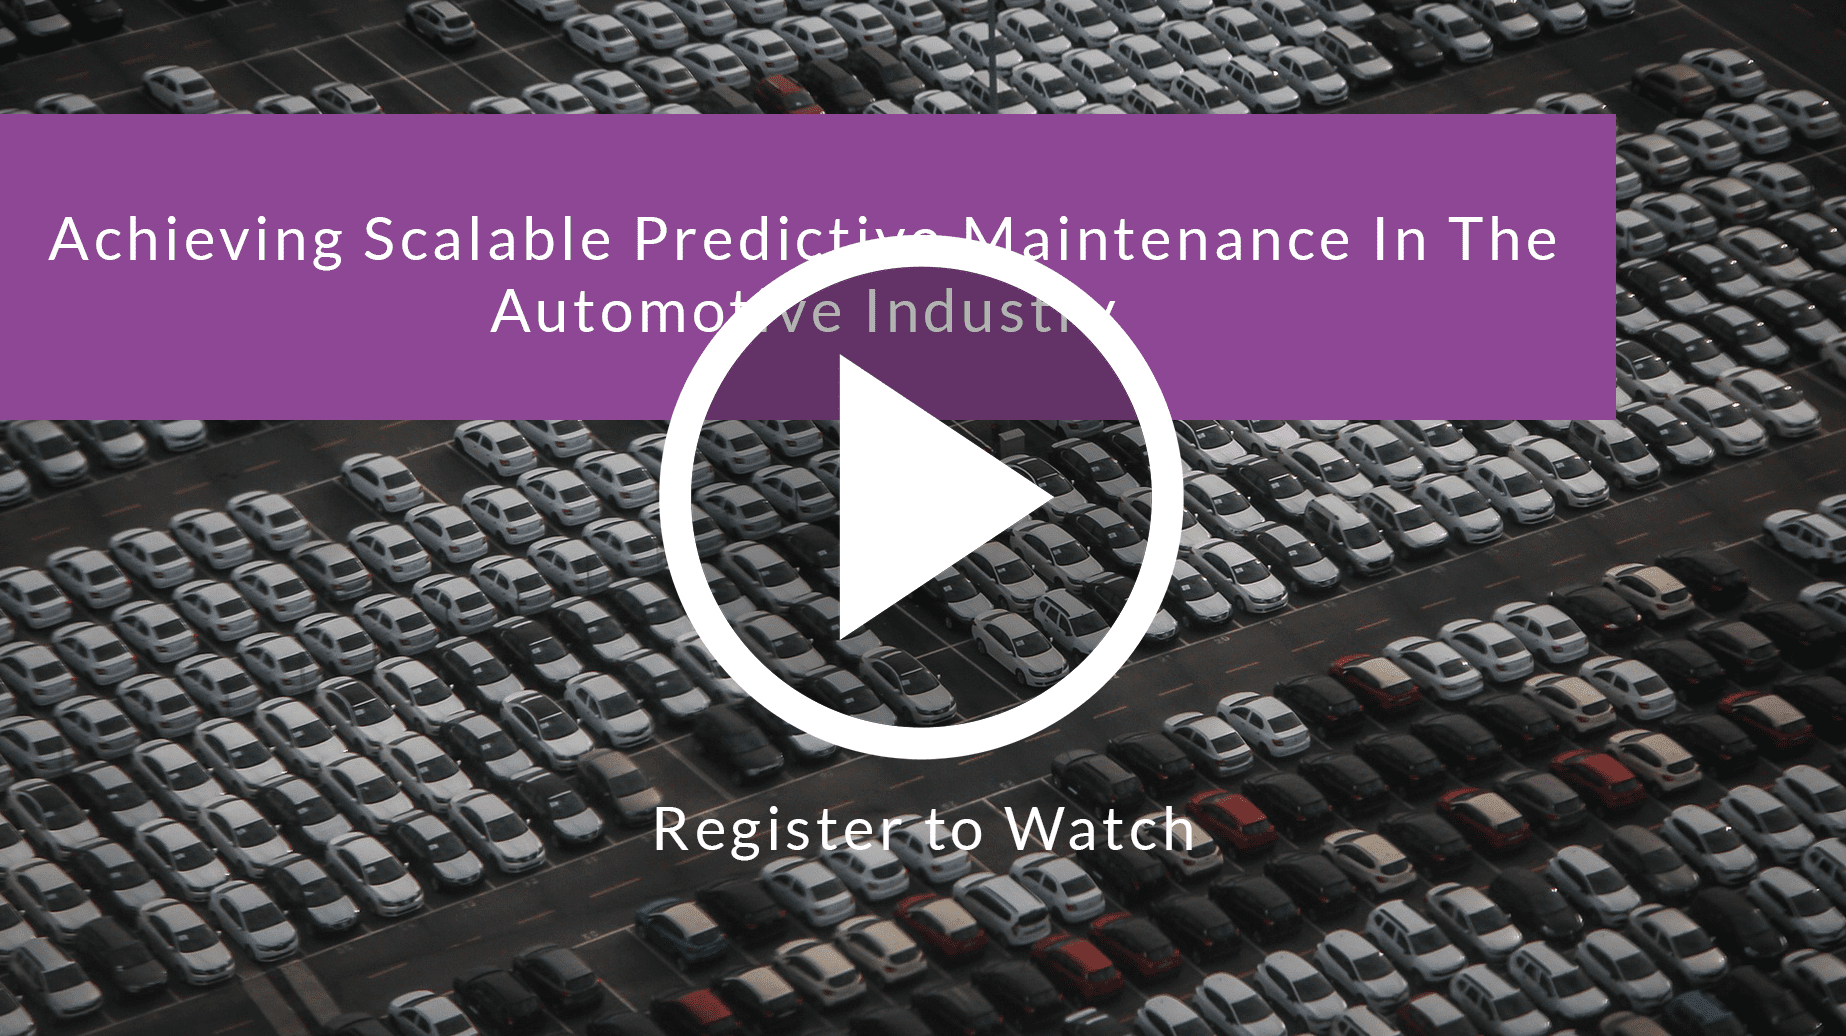 Achieving Scalable Predictive Maintenance In The Automotive Industry